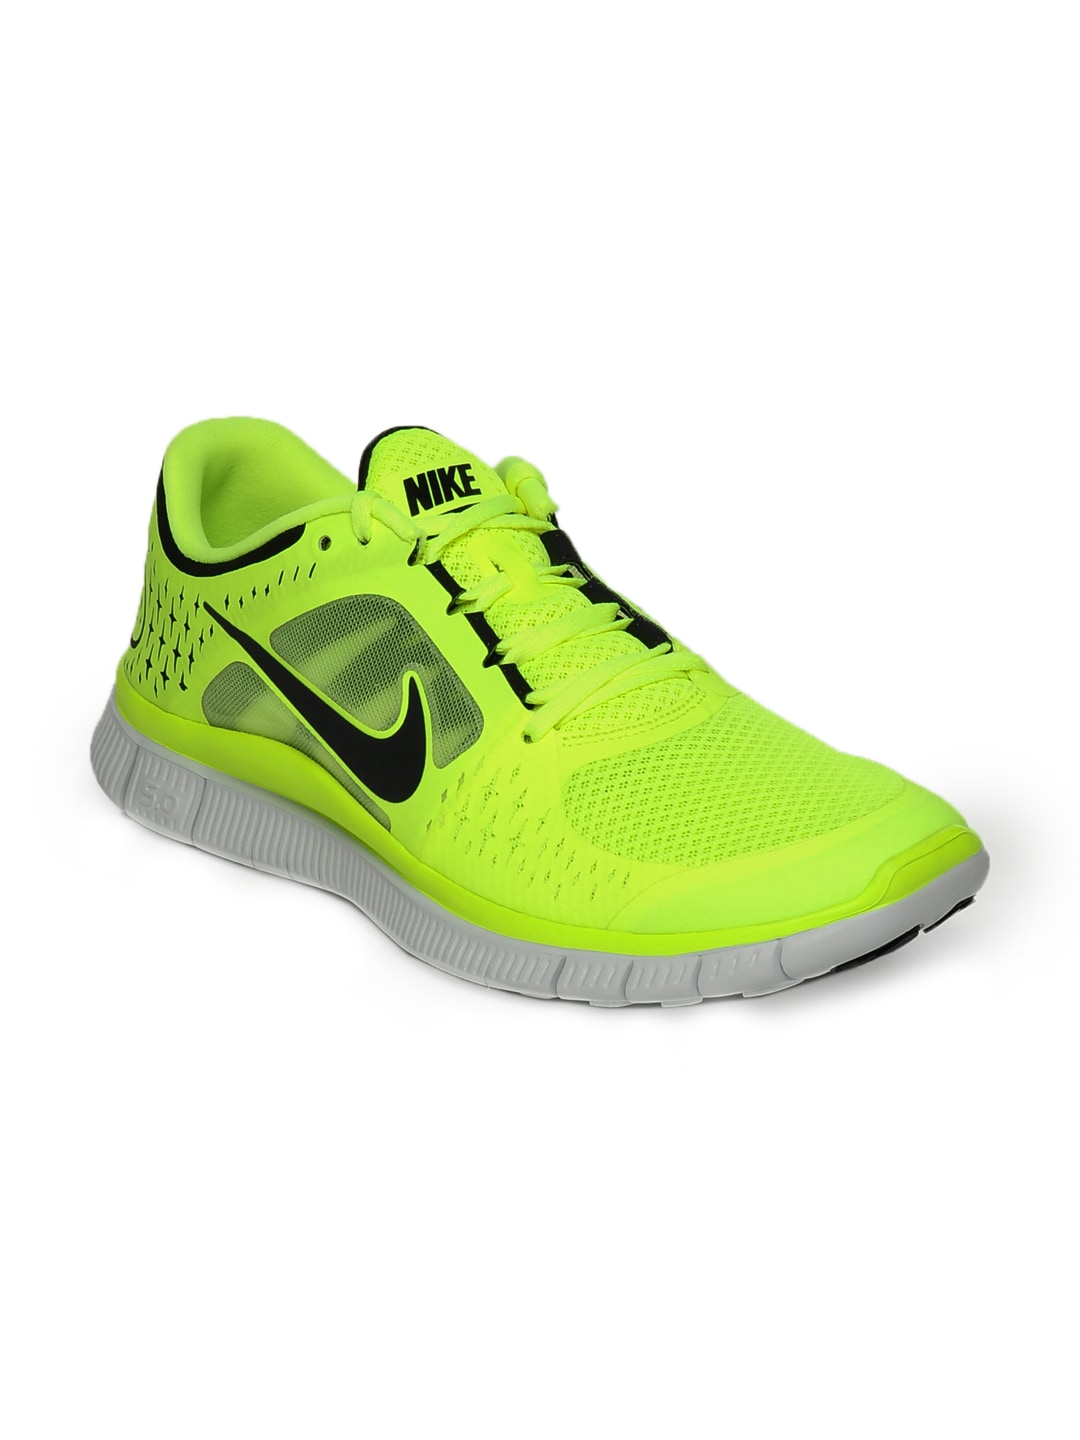 cheaper 3a441 f89dc Nike 510642-702 Men Fluorescent Green Shoes - Best Price ...